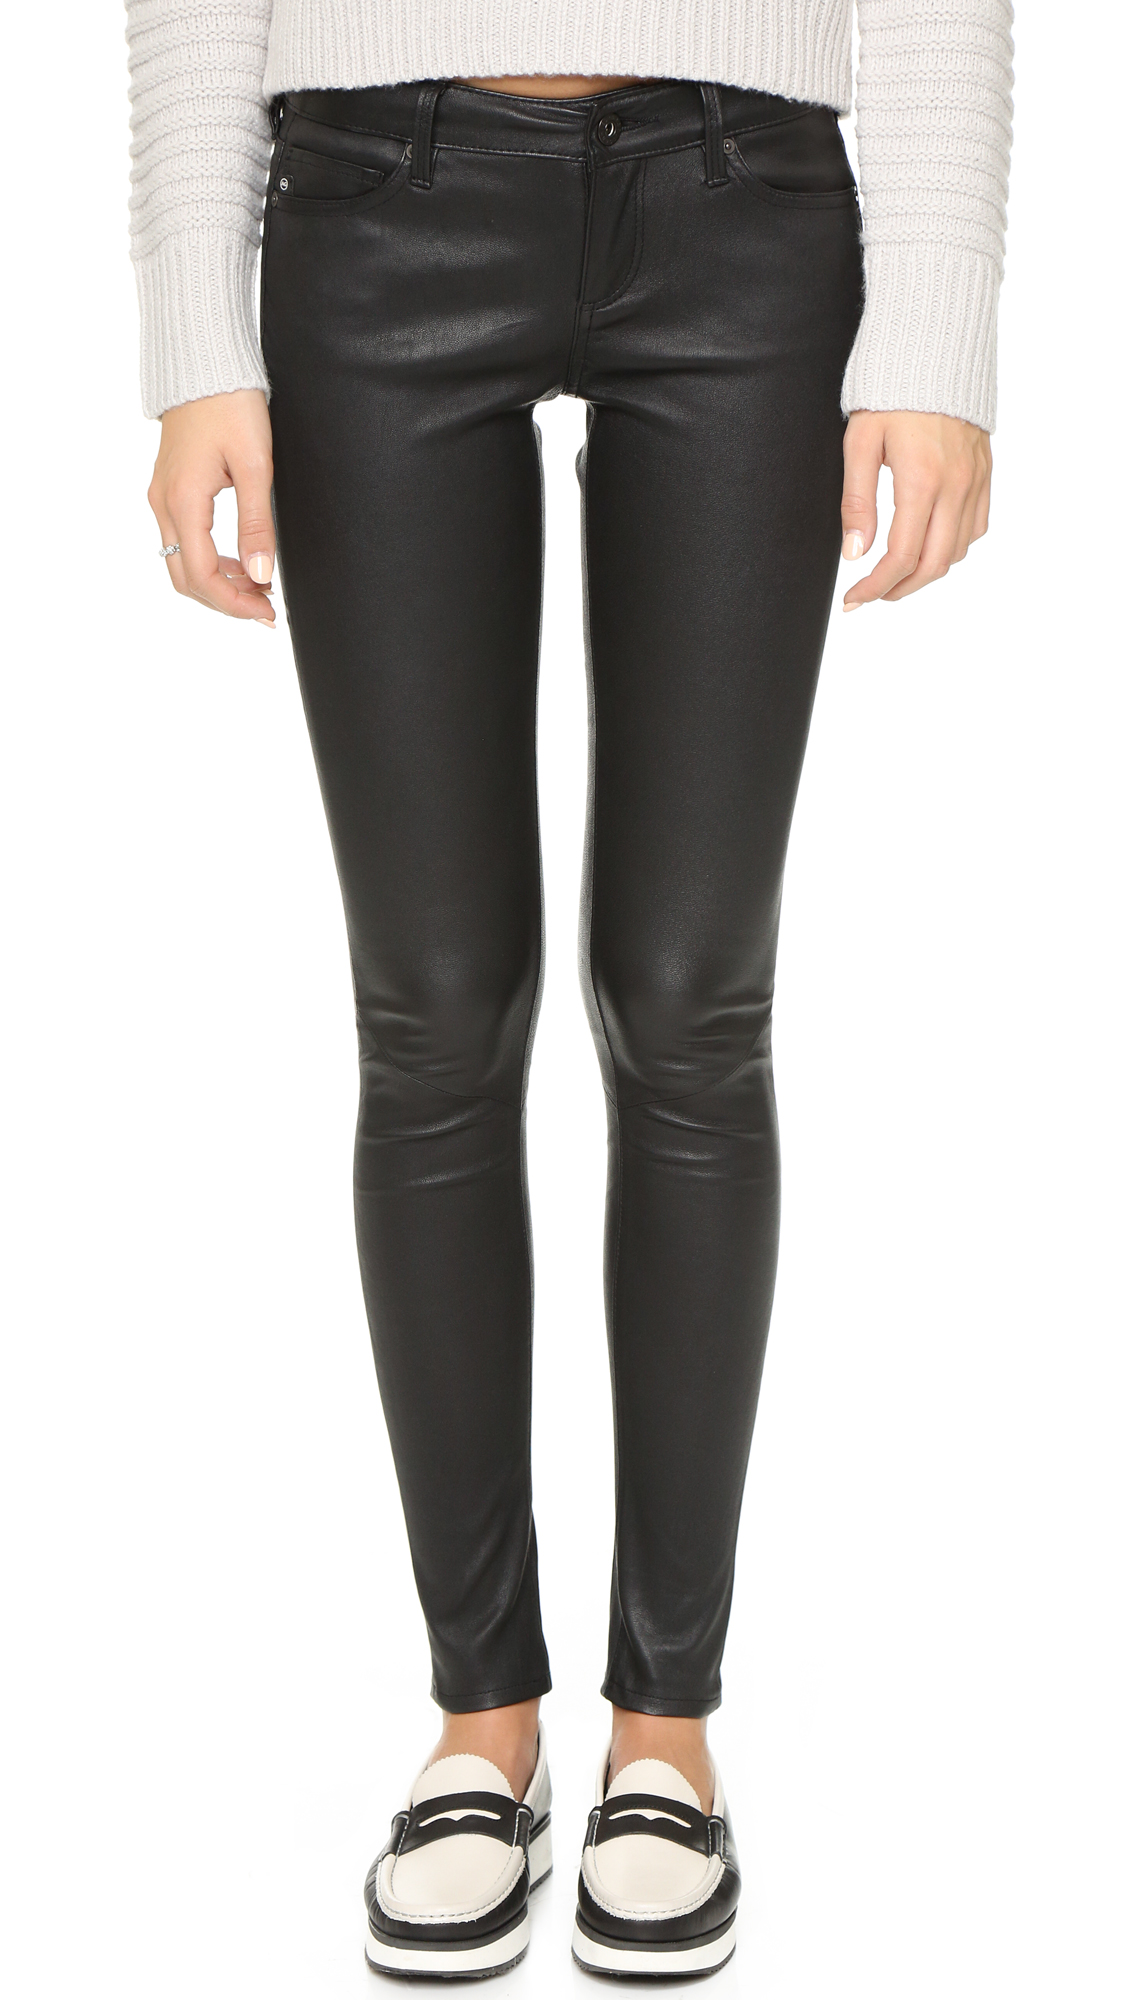 AG Skinny Leather Pants - Super Black